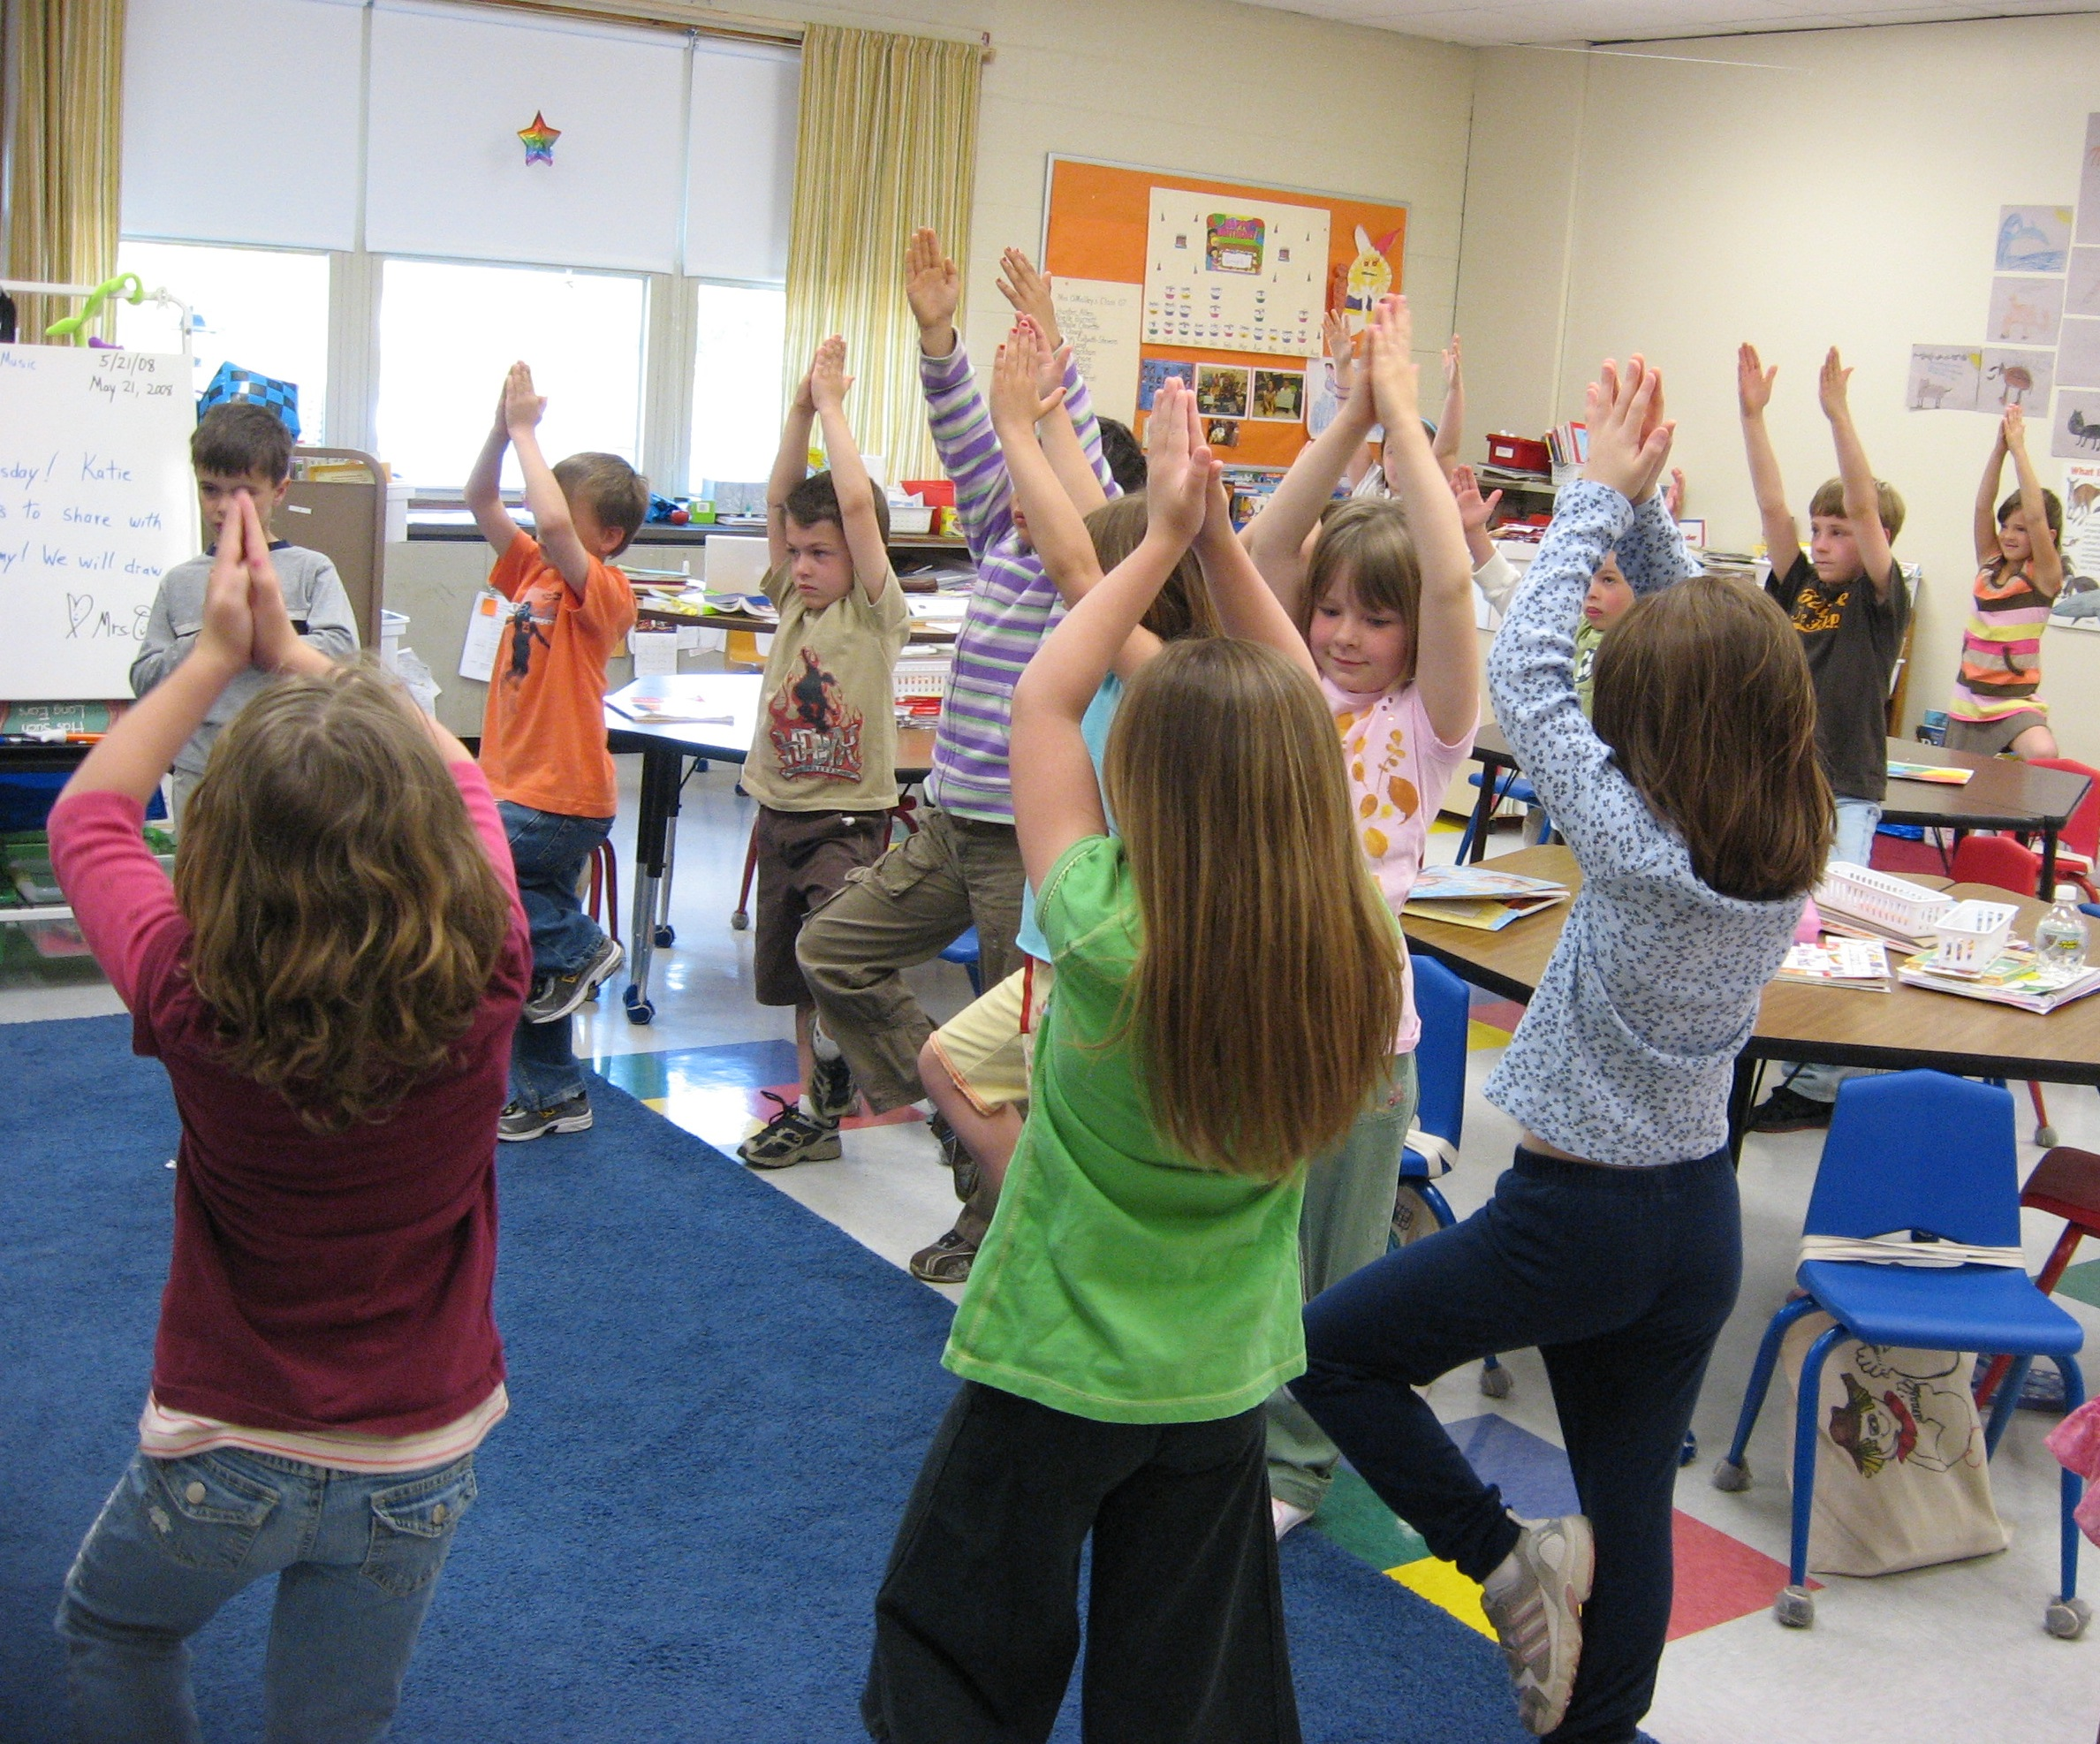 Using Yoga and Mindfulness to Help Kids Learn: A Teacher's Perspective